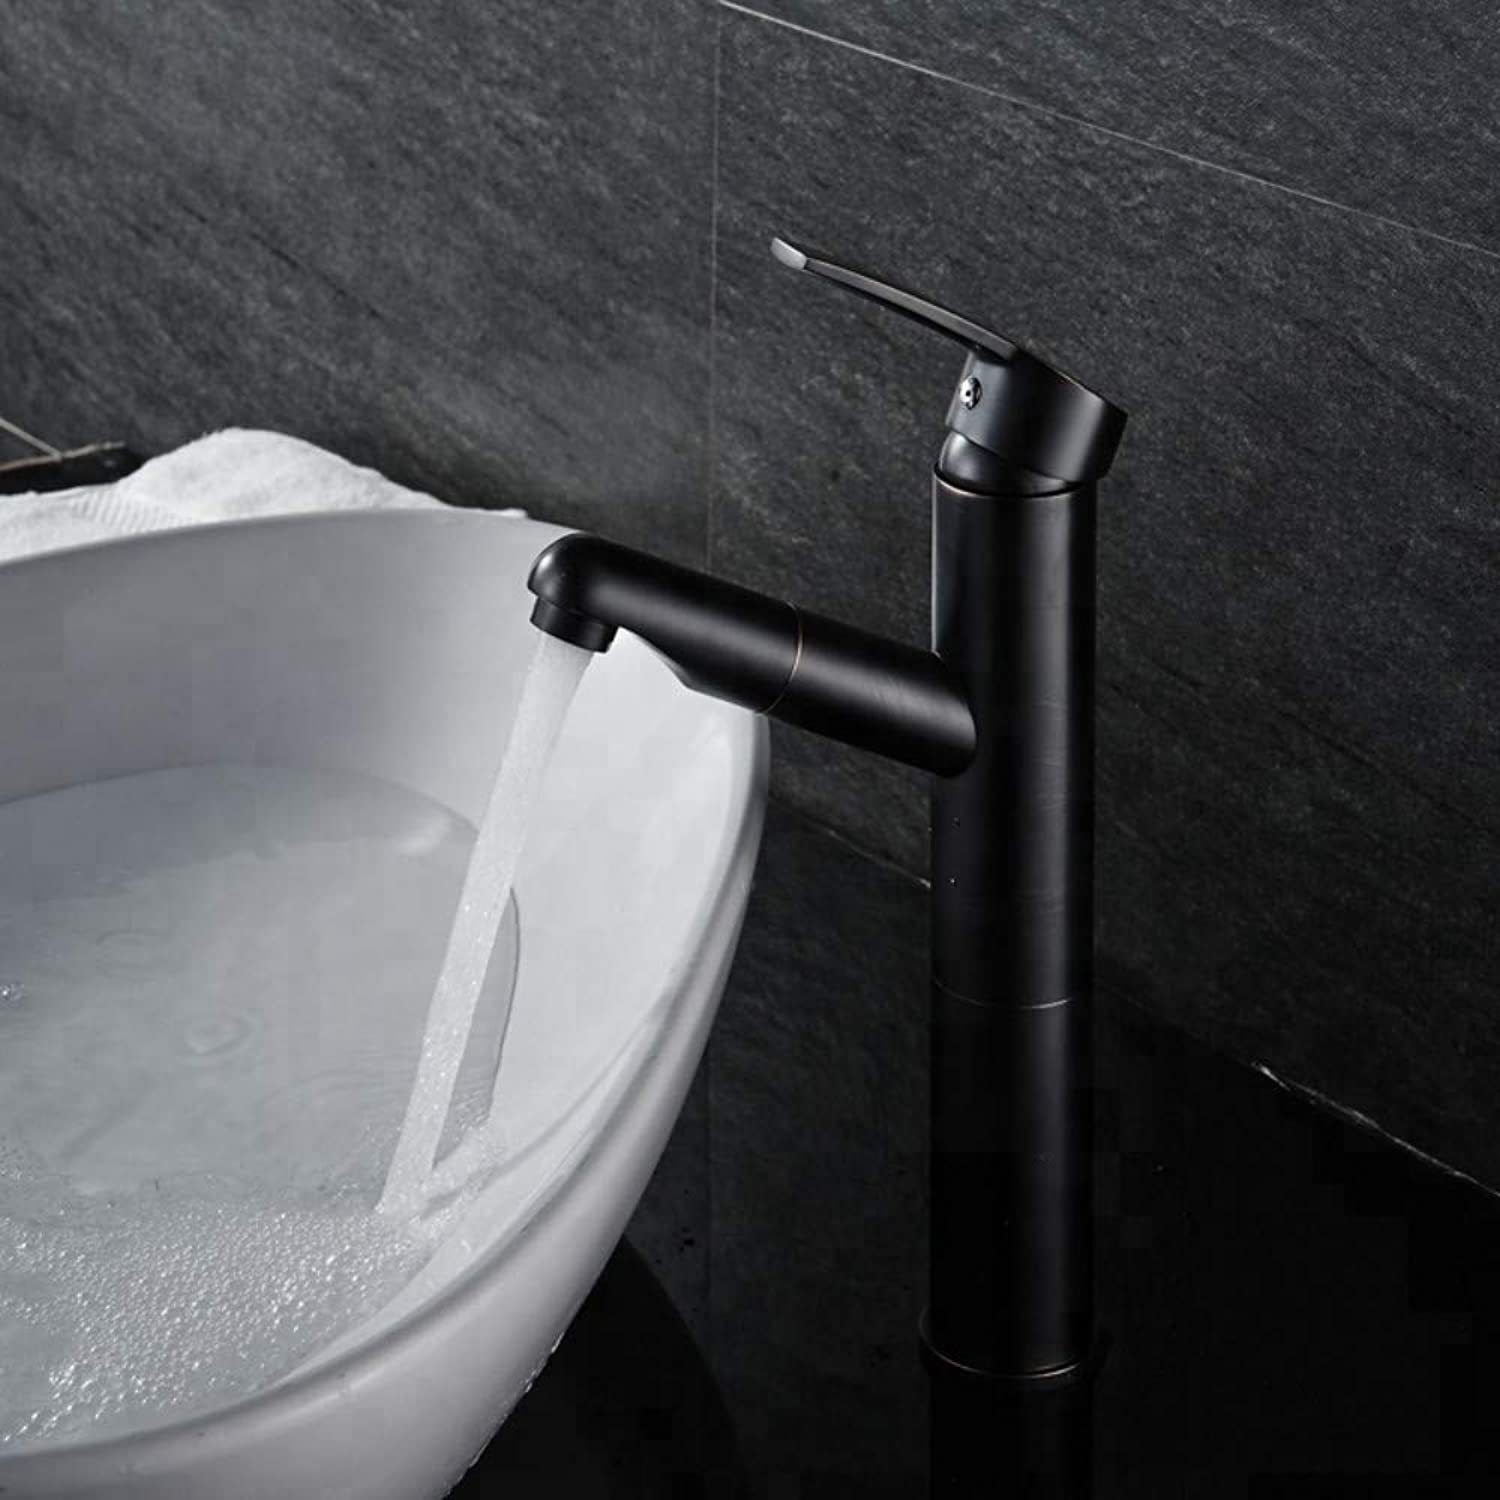 Bathroom Sink Tap Basin Sink Mixer Tap Single Handle Vintage Brass Orb Finish Black color Pull Out Bathroom Tall Basin Faucet Mixer Tap